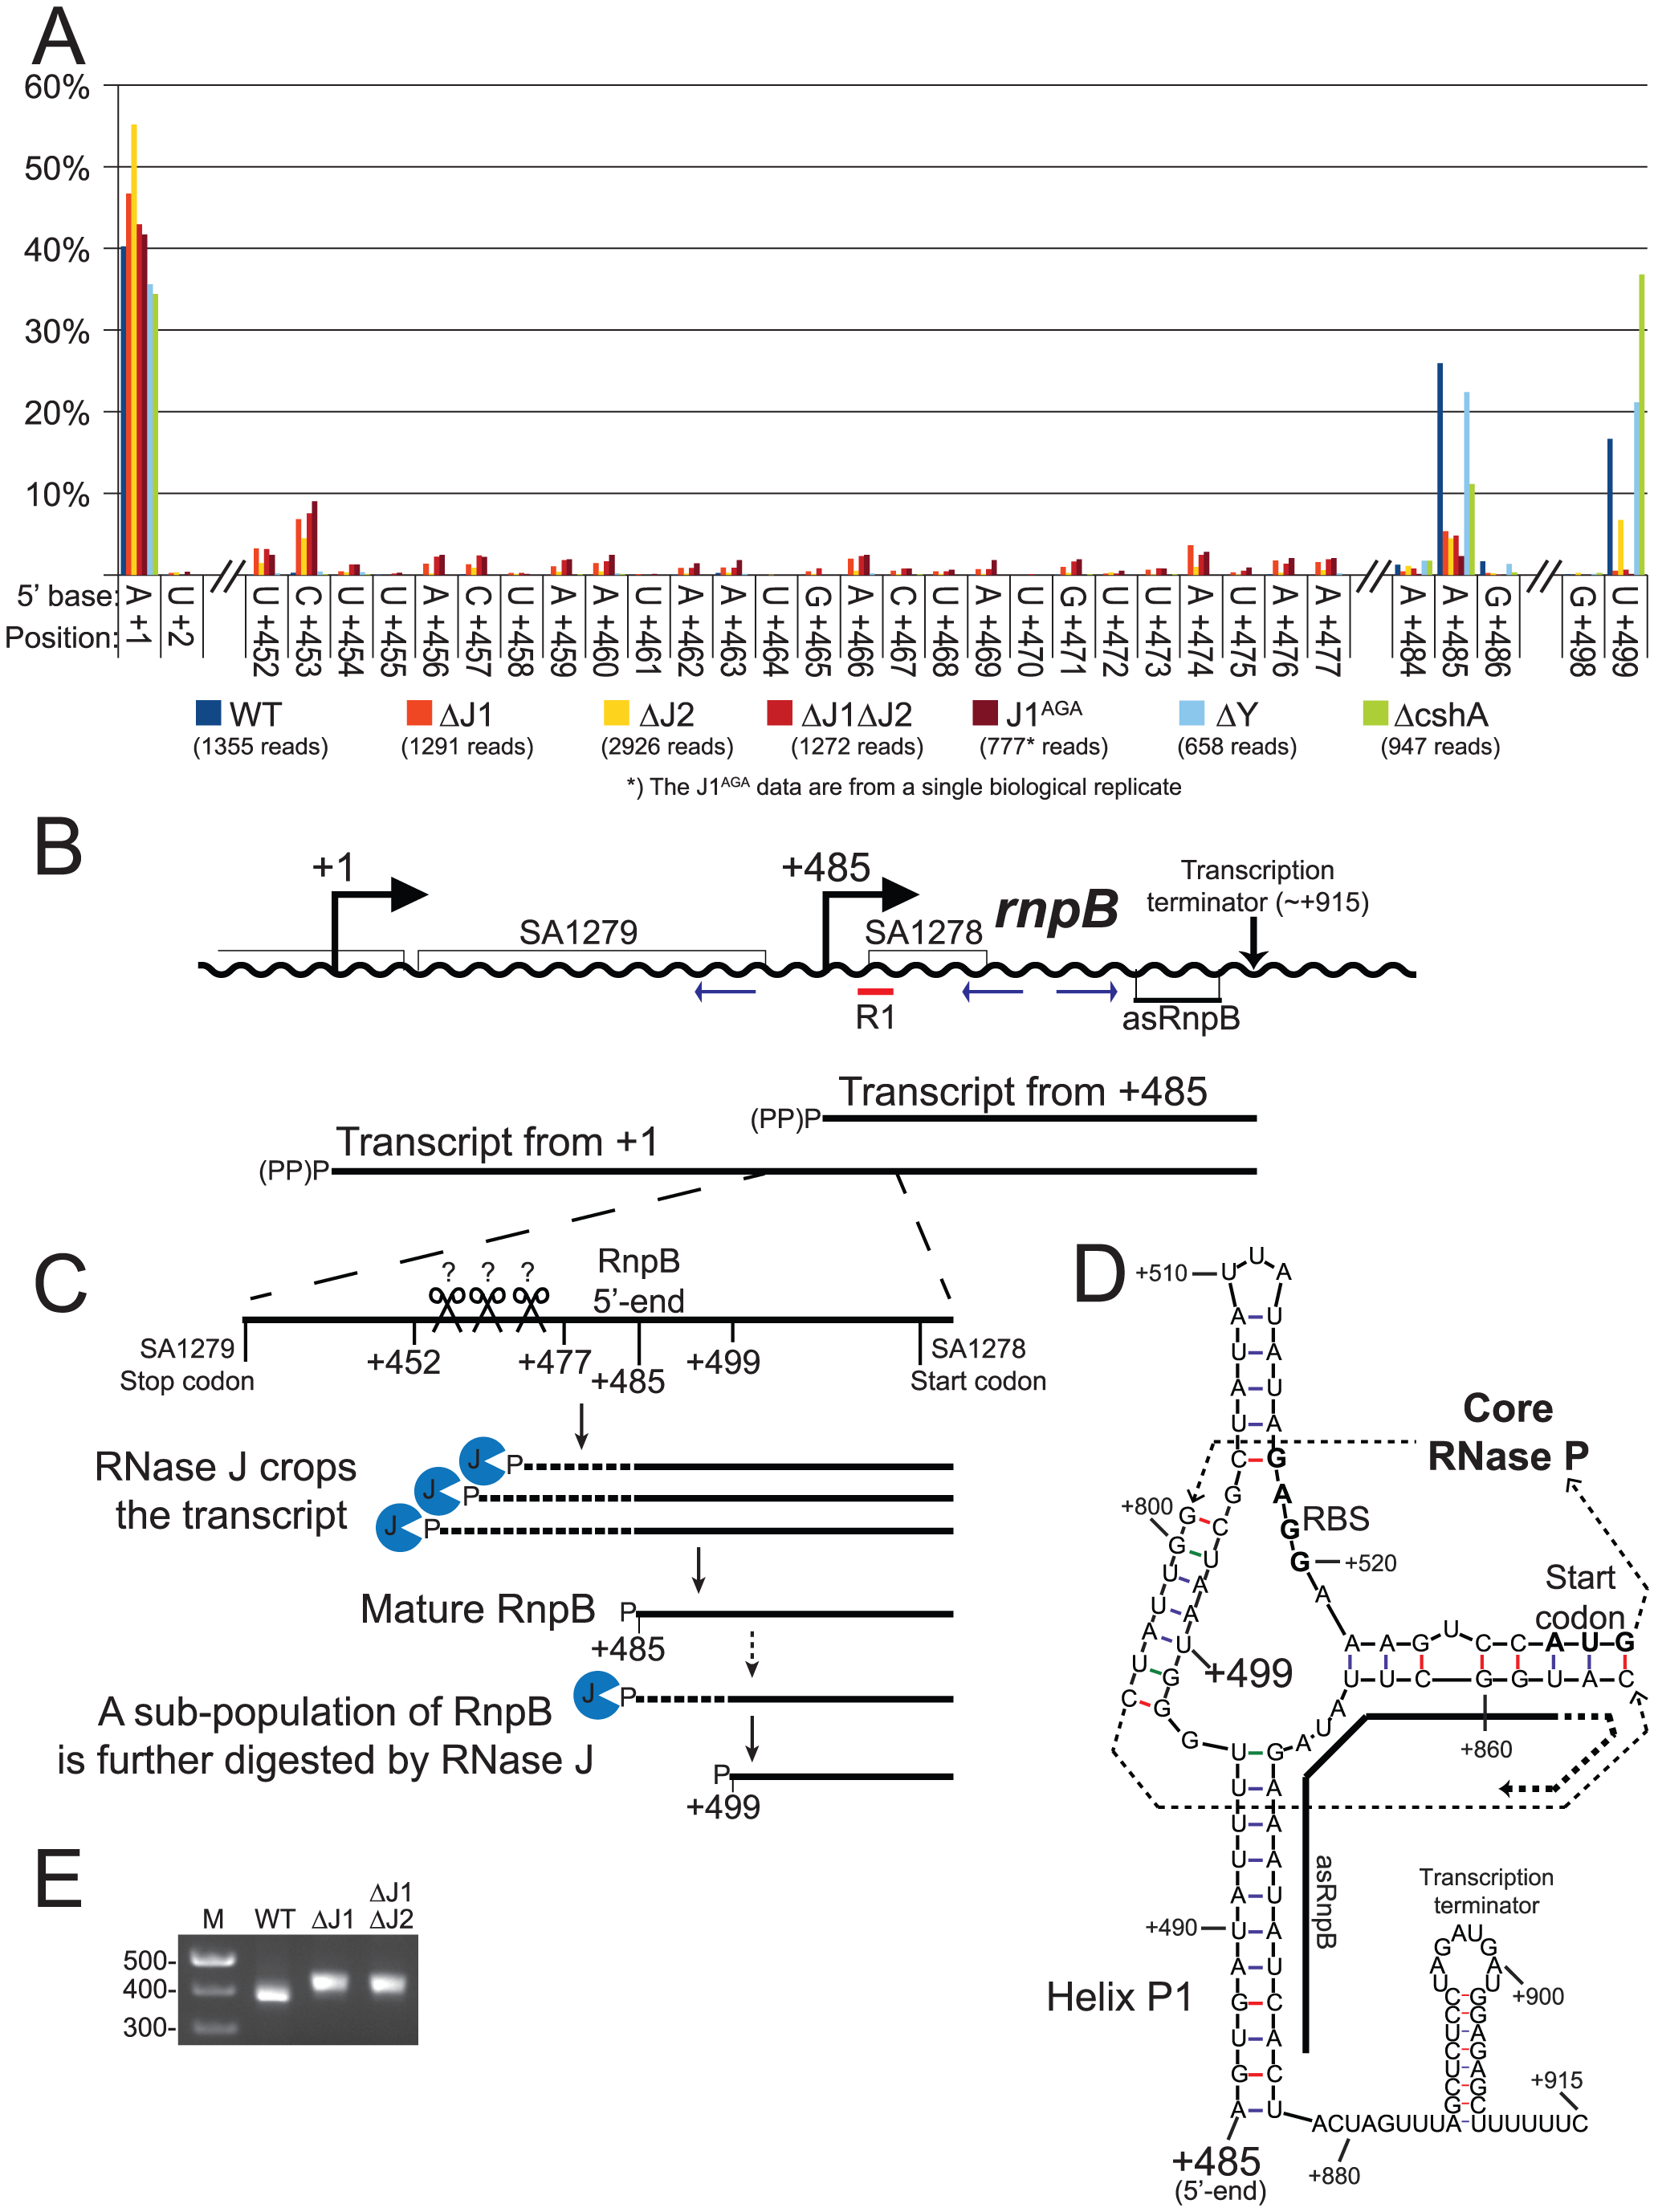 Both maturation and inactivation of RNase P RNA is carried out by RNase J.